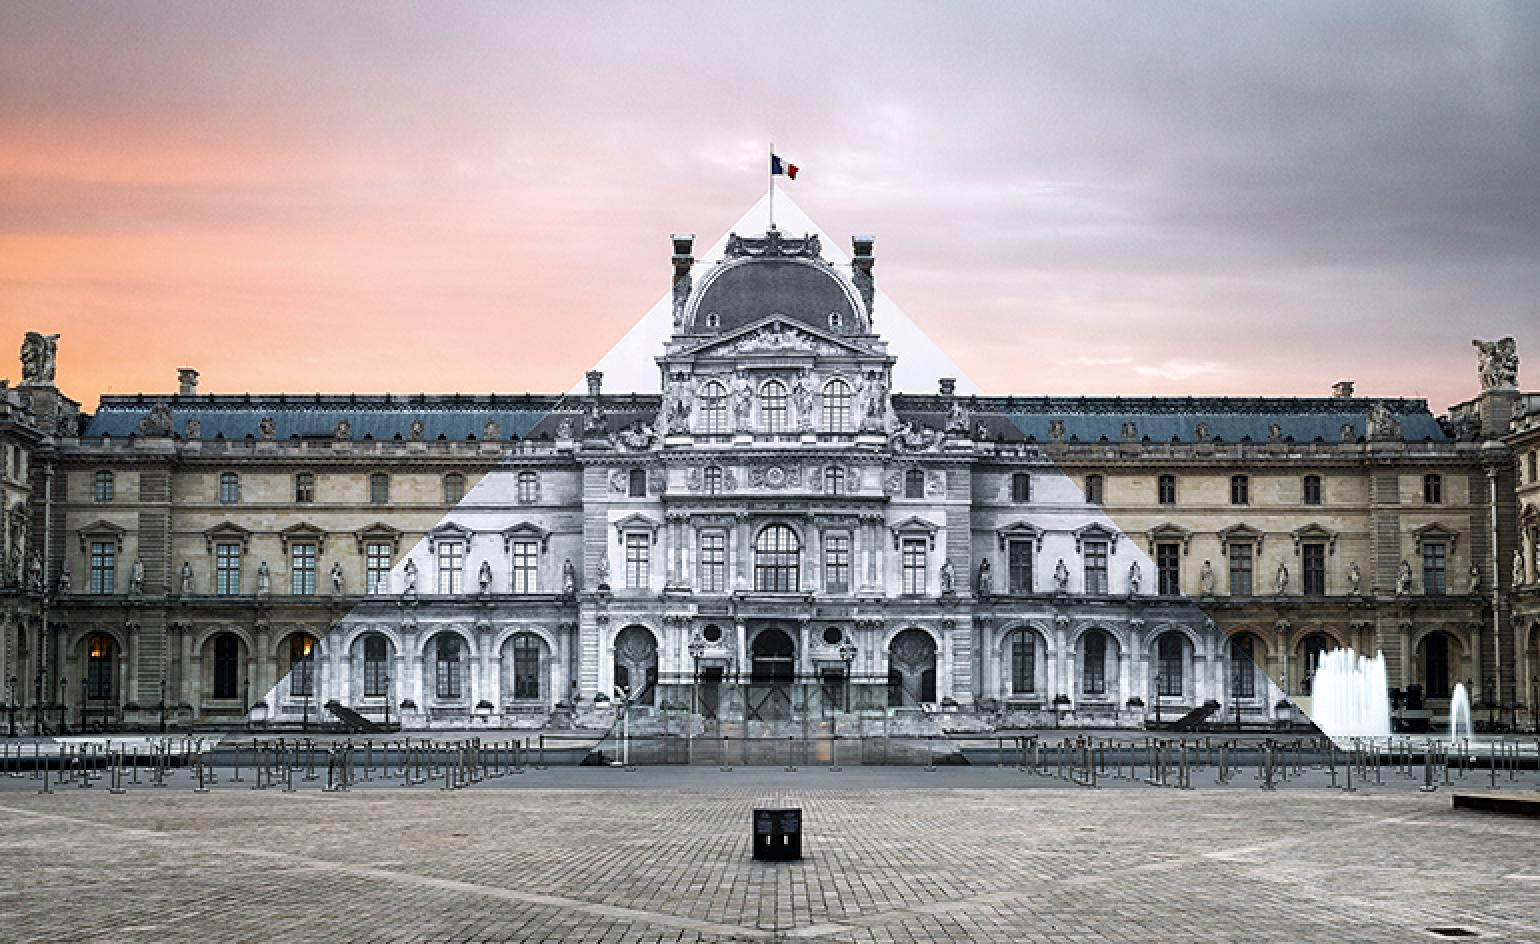 French artist JRs public art installation at Louvre Wallpaper 1540x944